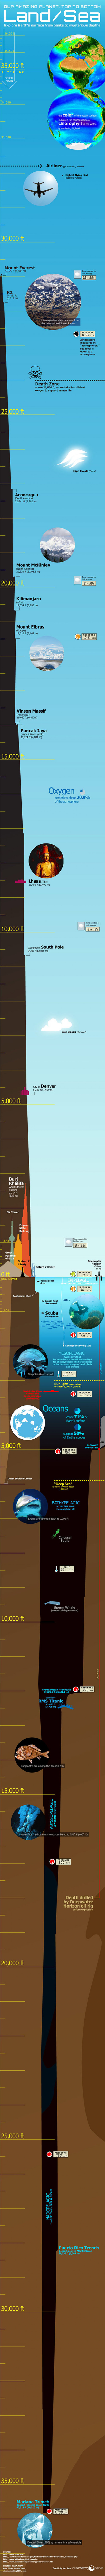 Tallest Mountain to Deepest Ocean Trench Infographic